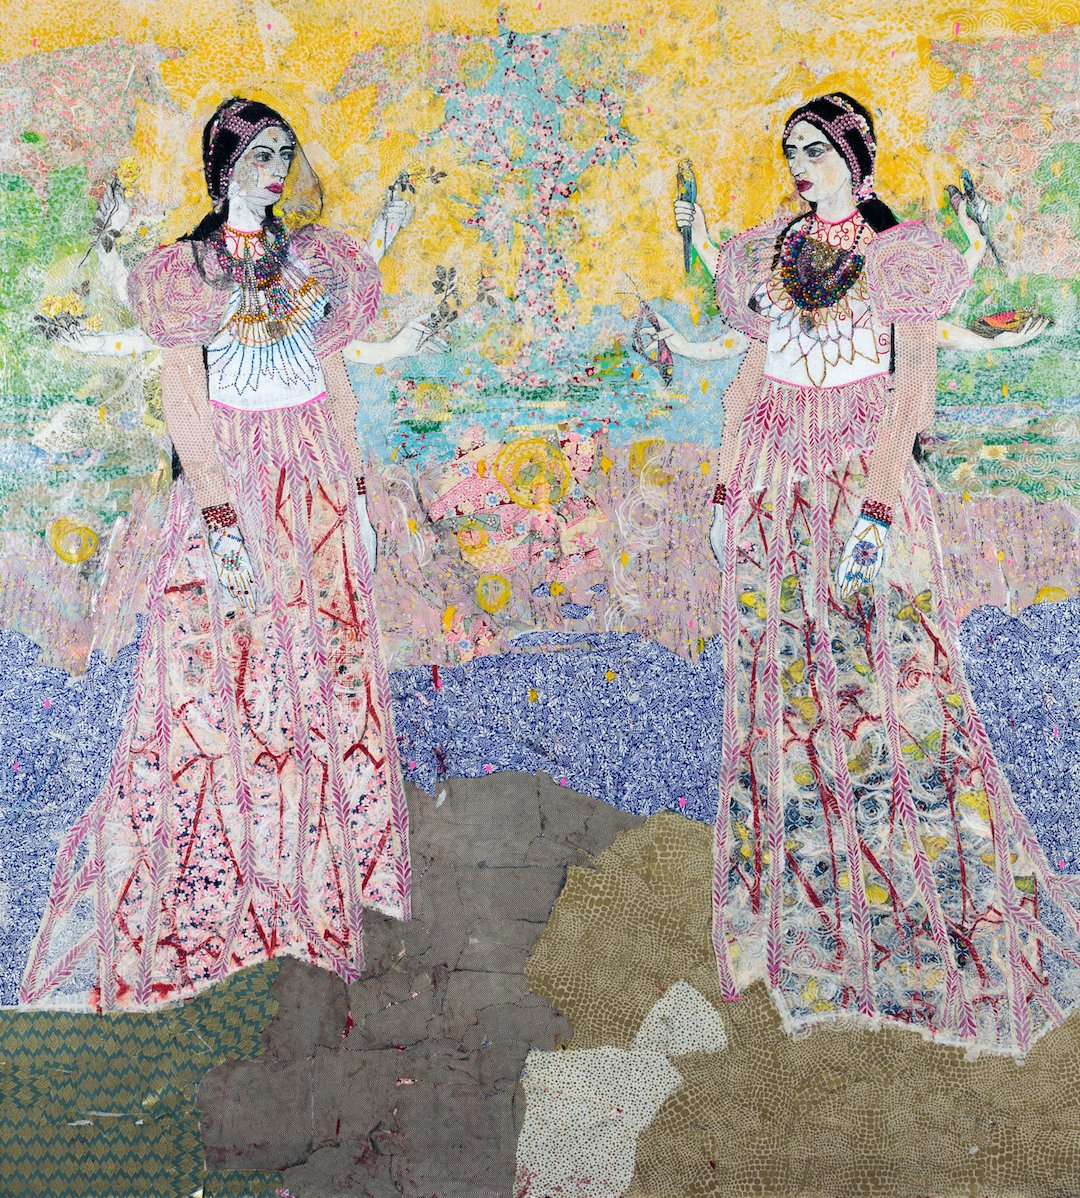 Maria Berrio  Columbian Collage Artist based in NY